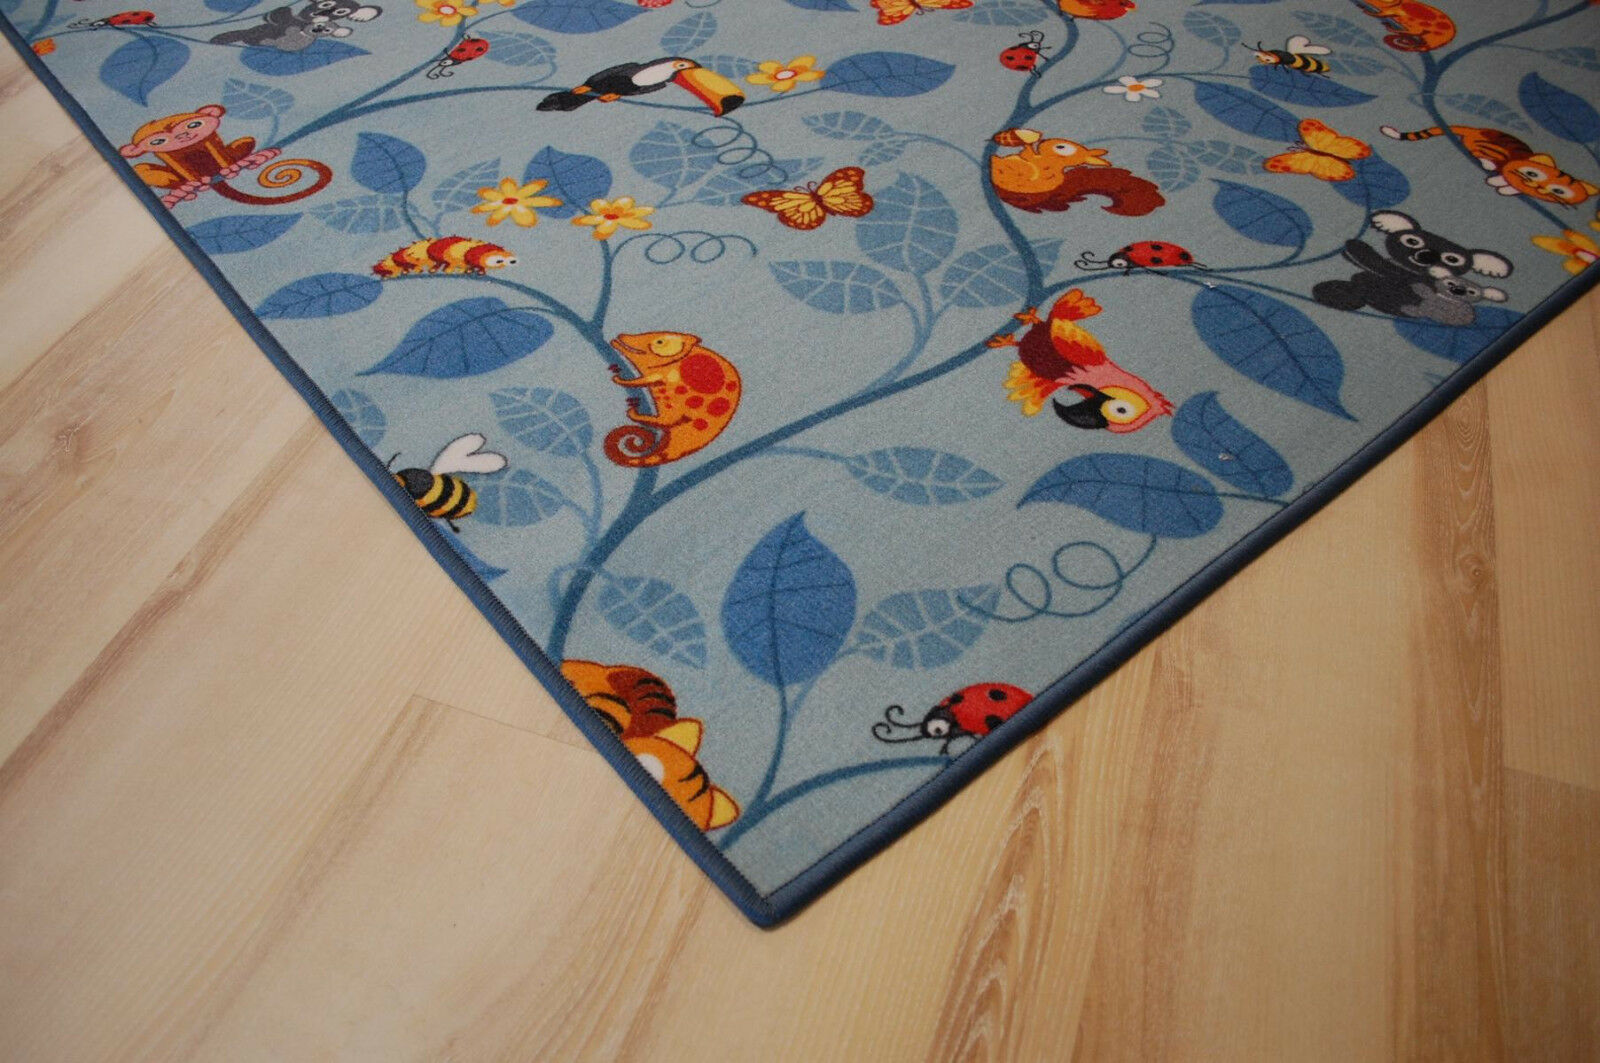 Enfants Tapis Tapis de Jeu Jungle Velours Bleu 400x540 cm Jungle Animaux